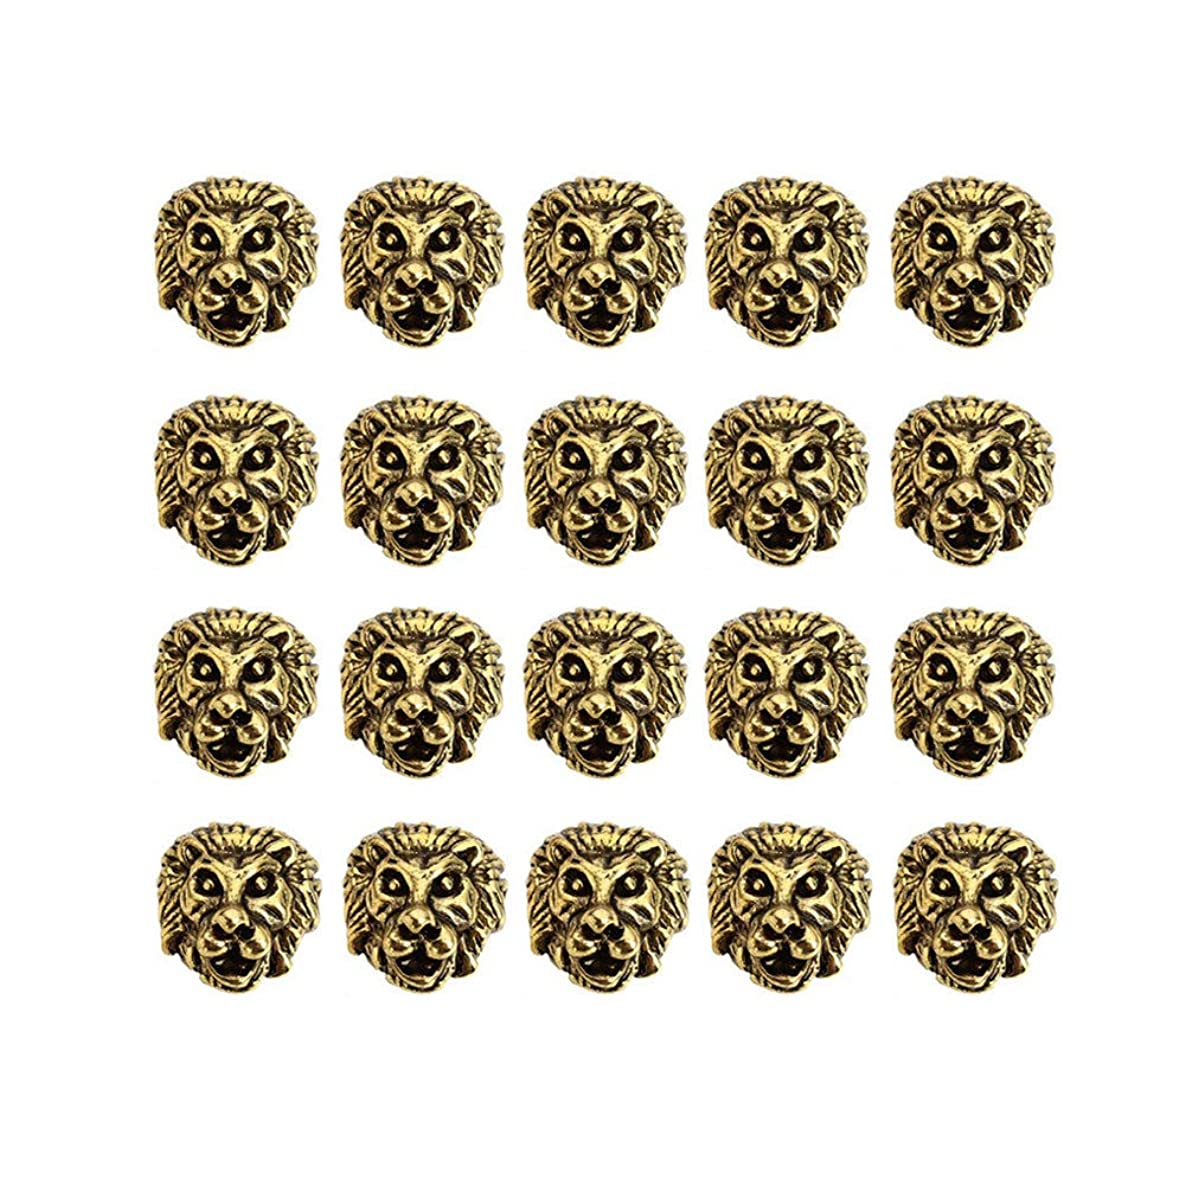 Mystart 20 Pieces Alloy Lion Head Beads Spacer Beads Loose Beads Charms for Bracelet Jewelry Making (Antique Gold)